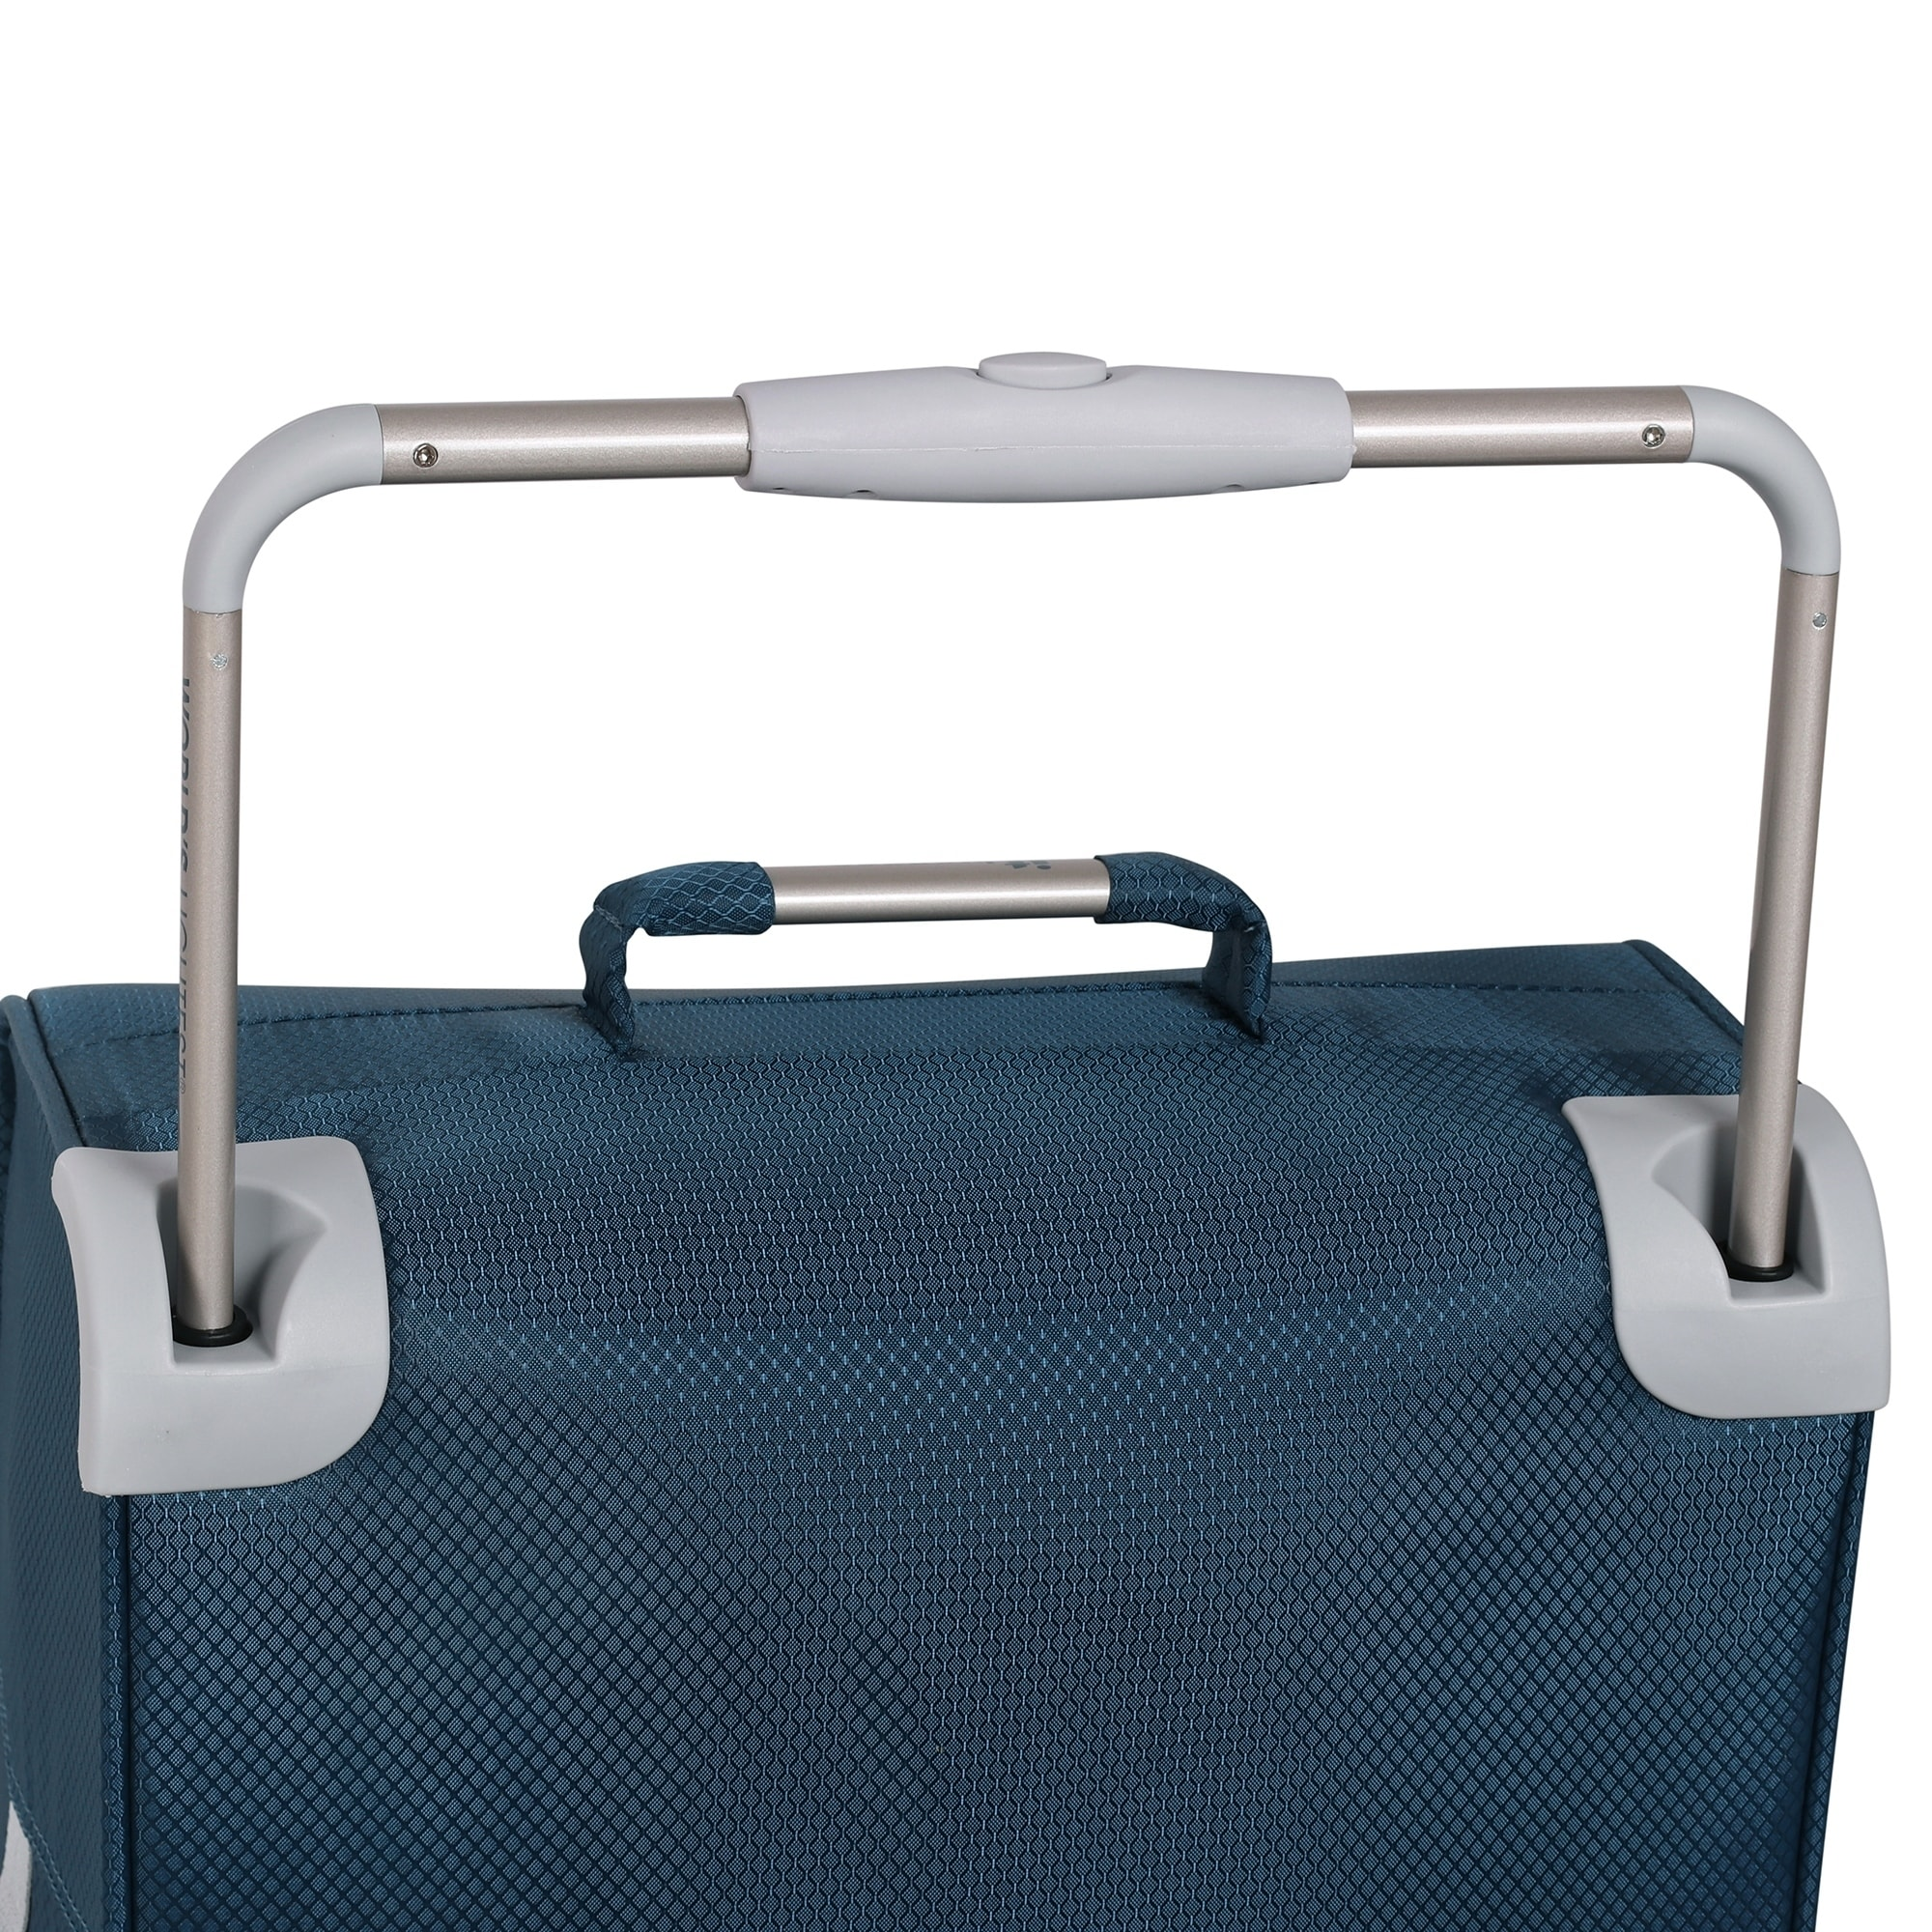 it-luggage-World-039-s-Lightest-27-6-034-Lightweight-Spinner-Suitcase thumbnail 8